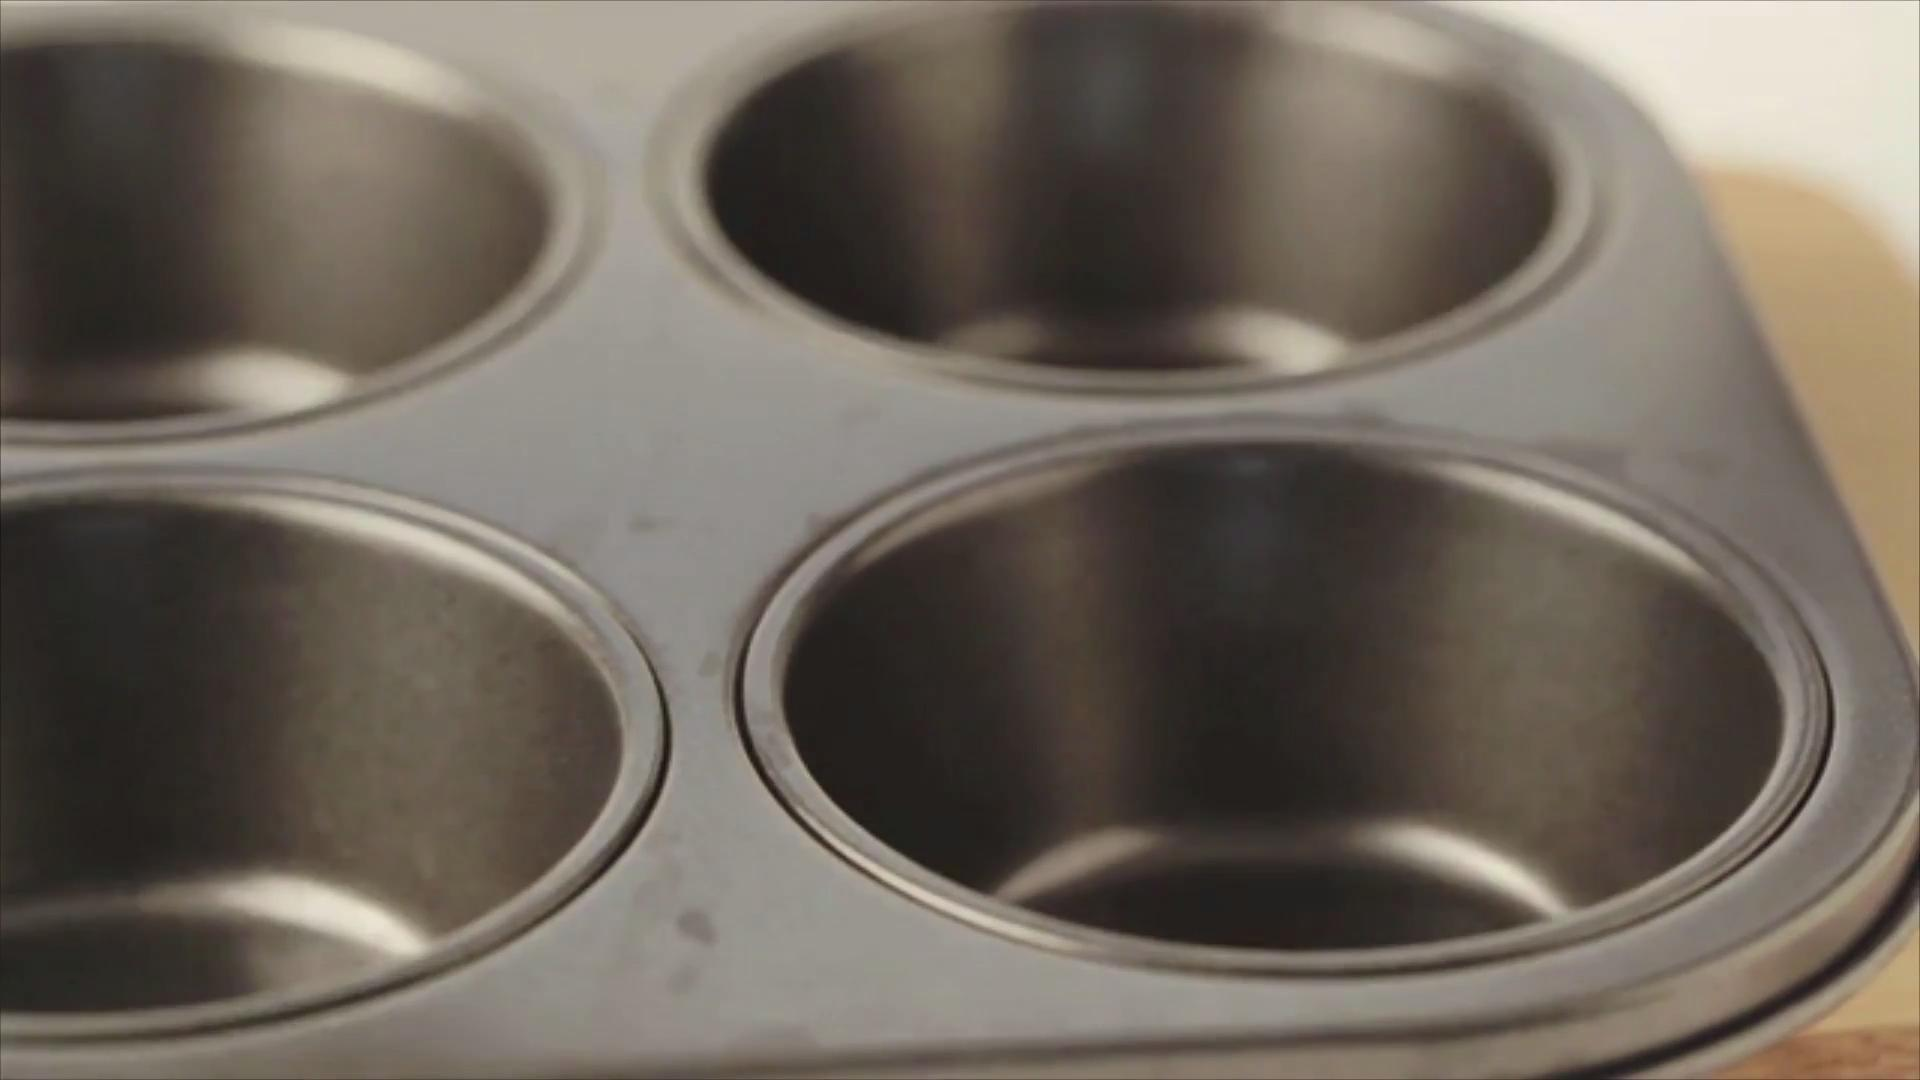 Get Inspired With These Muffin Pan Mini Meals